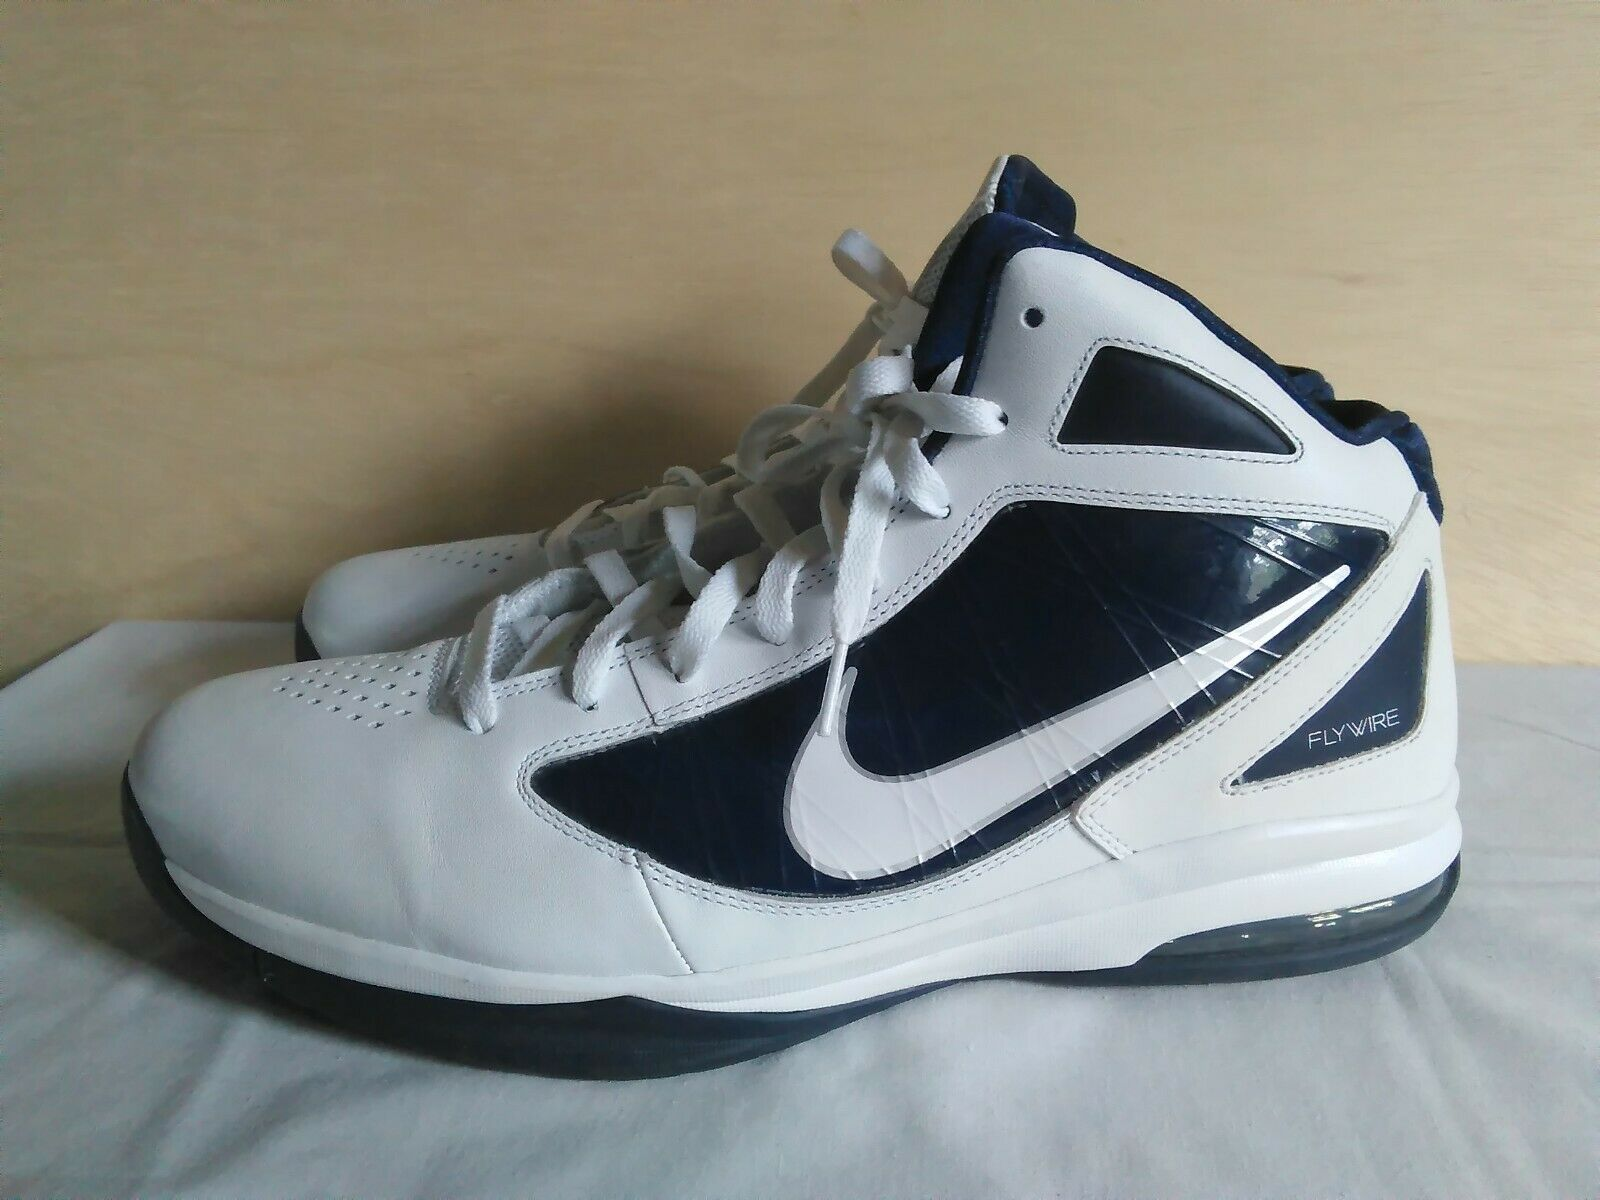 2011 Nike Air Max Destiny TB Flywire Basketball shoes - Mens Size 15